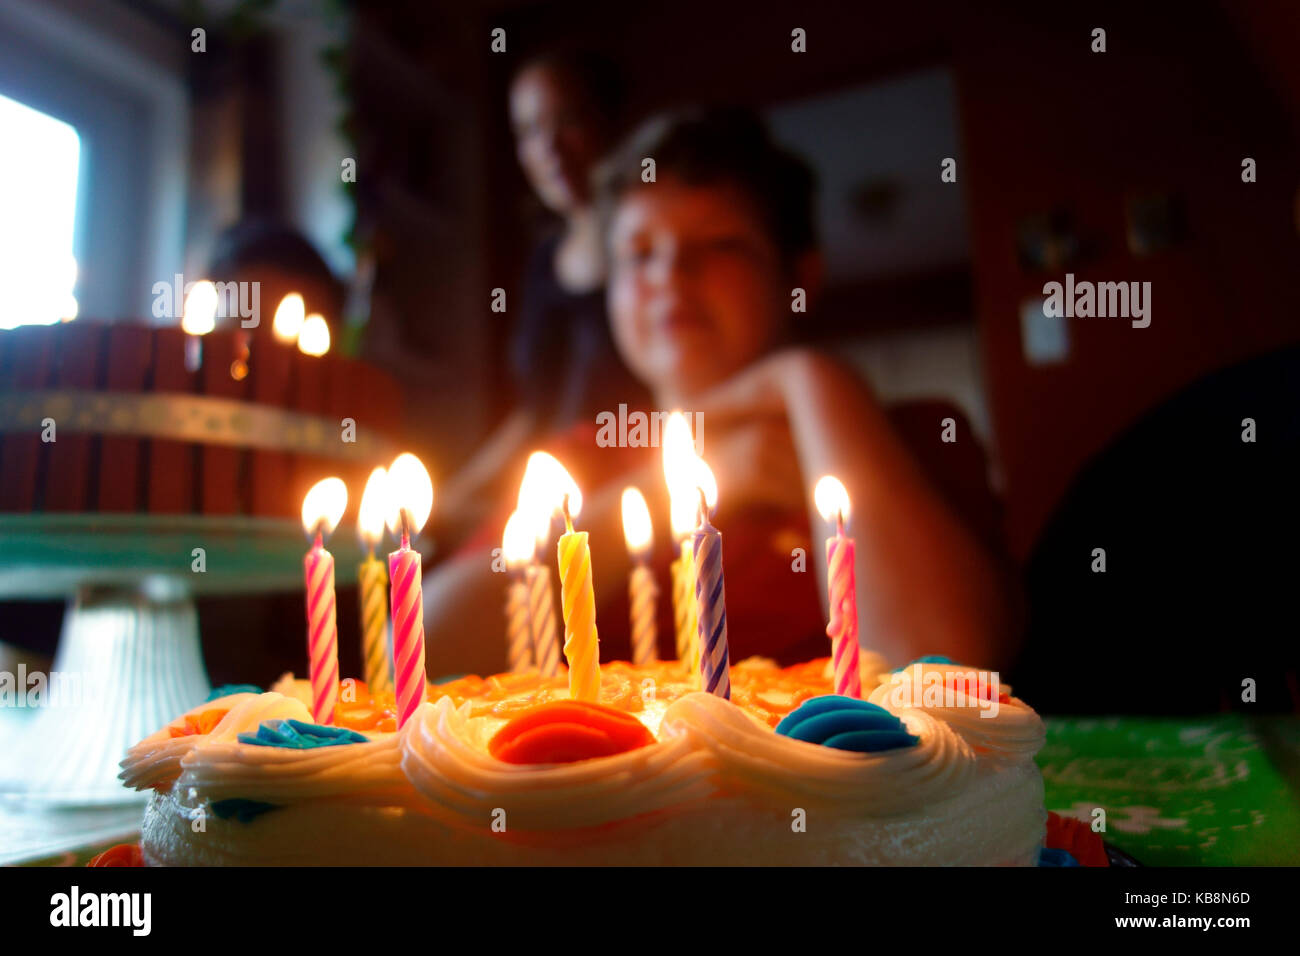 A Birthday Cake With Lit Candles In Front Of An 11 Year Old Boy